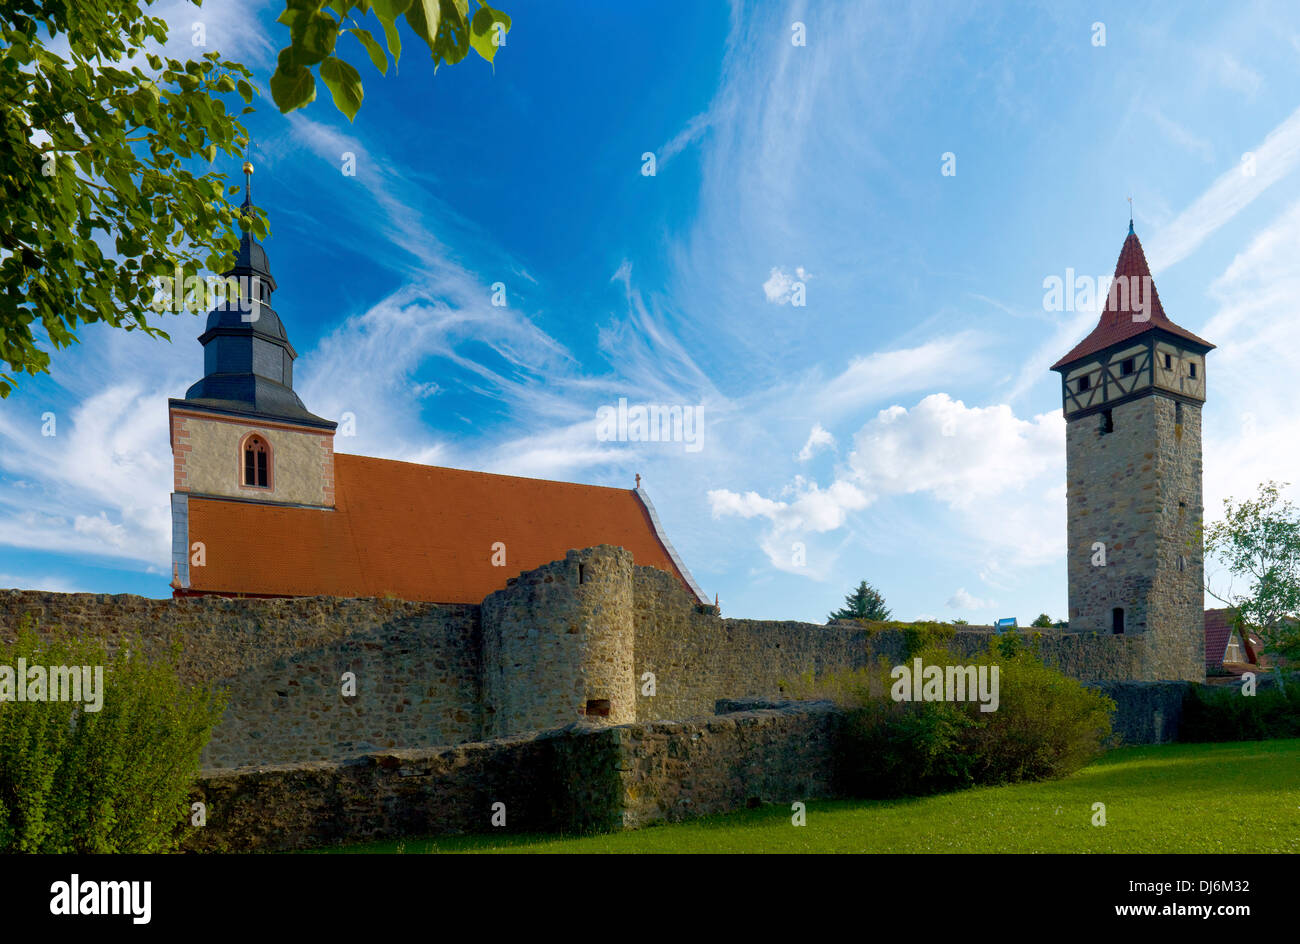 Fortified church in Ostheim, Rhoen Grabfeld district, Lower Franconia, Bavaria, Germany - Stock Image